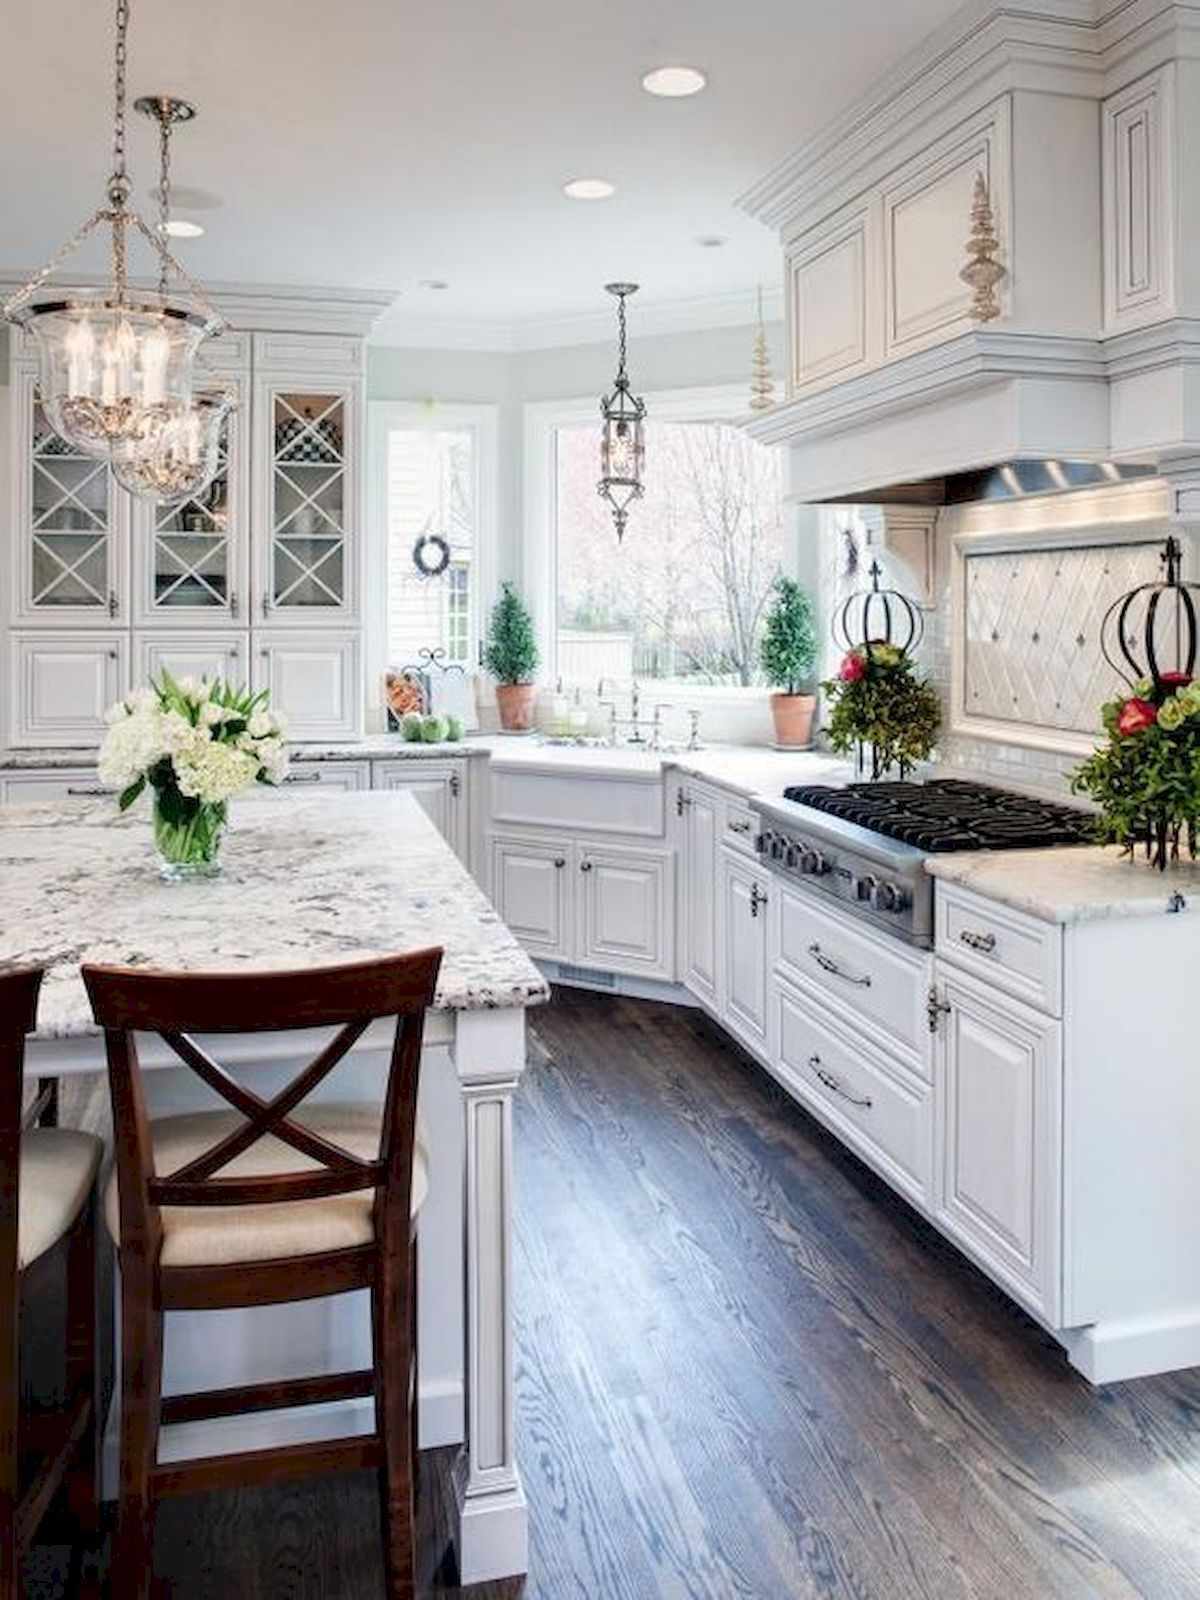 30 STUNNING FARMHOUSE DECOR IDEAS #kitchendesignideas